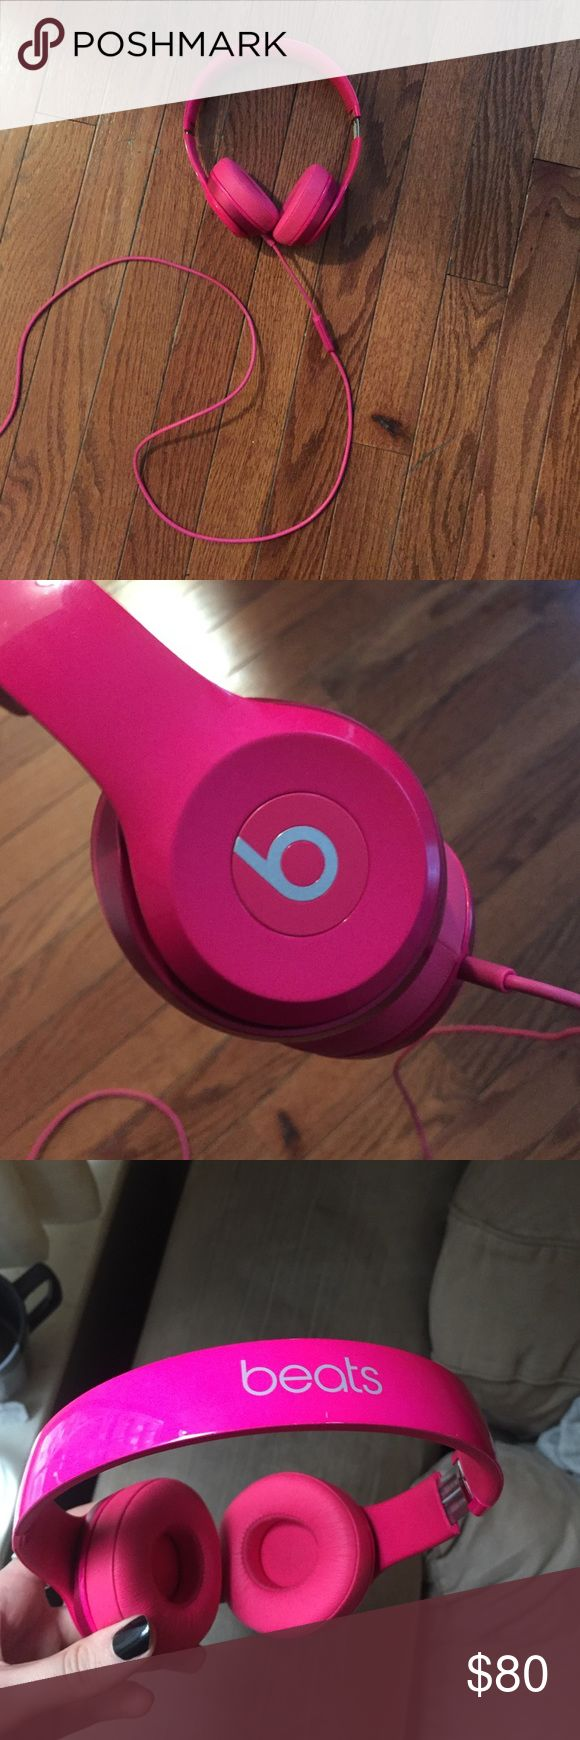 Pink Beats by Dre Solo 2 On-Ear Headphones Like-new condition. Rarely used. Final sale, sent with love. 💕 Beats by Dre Other